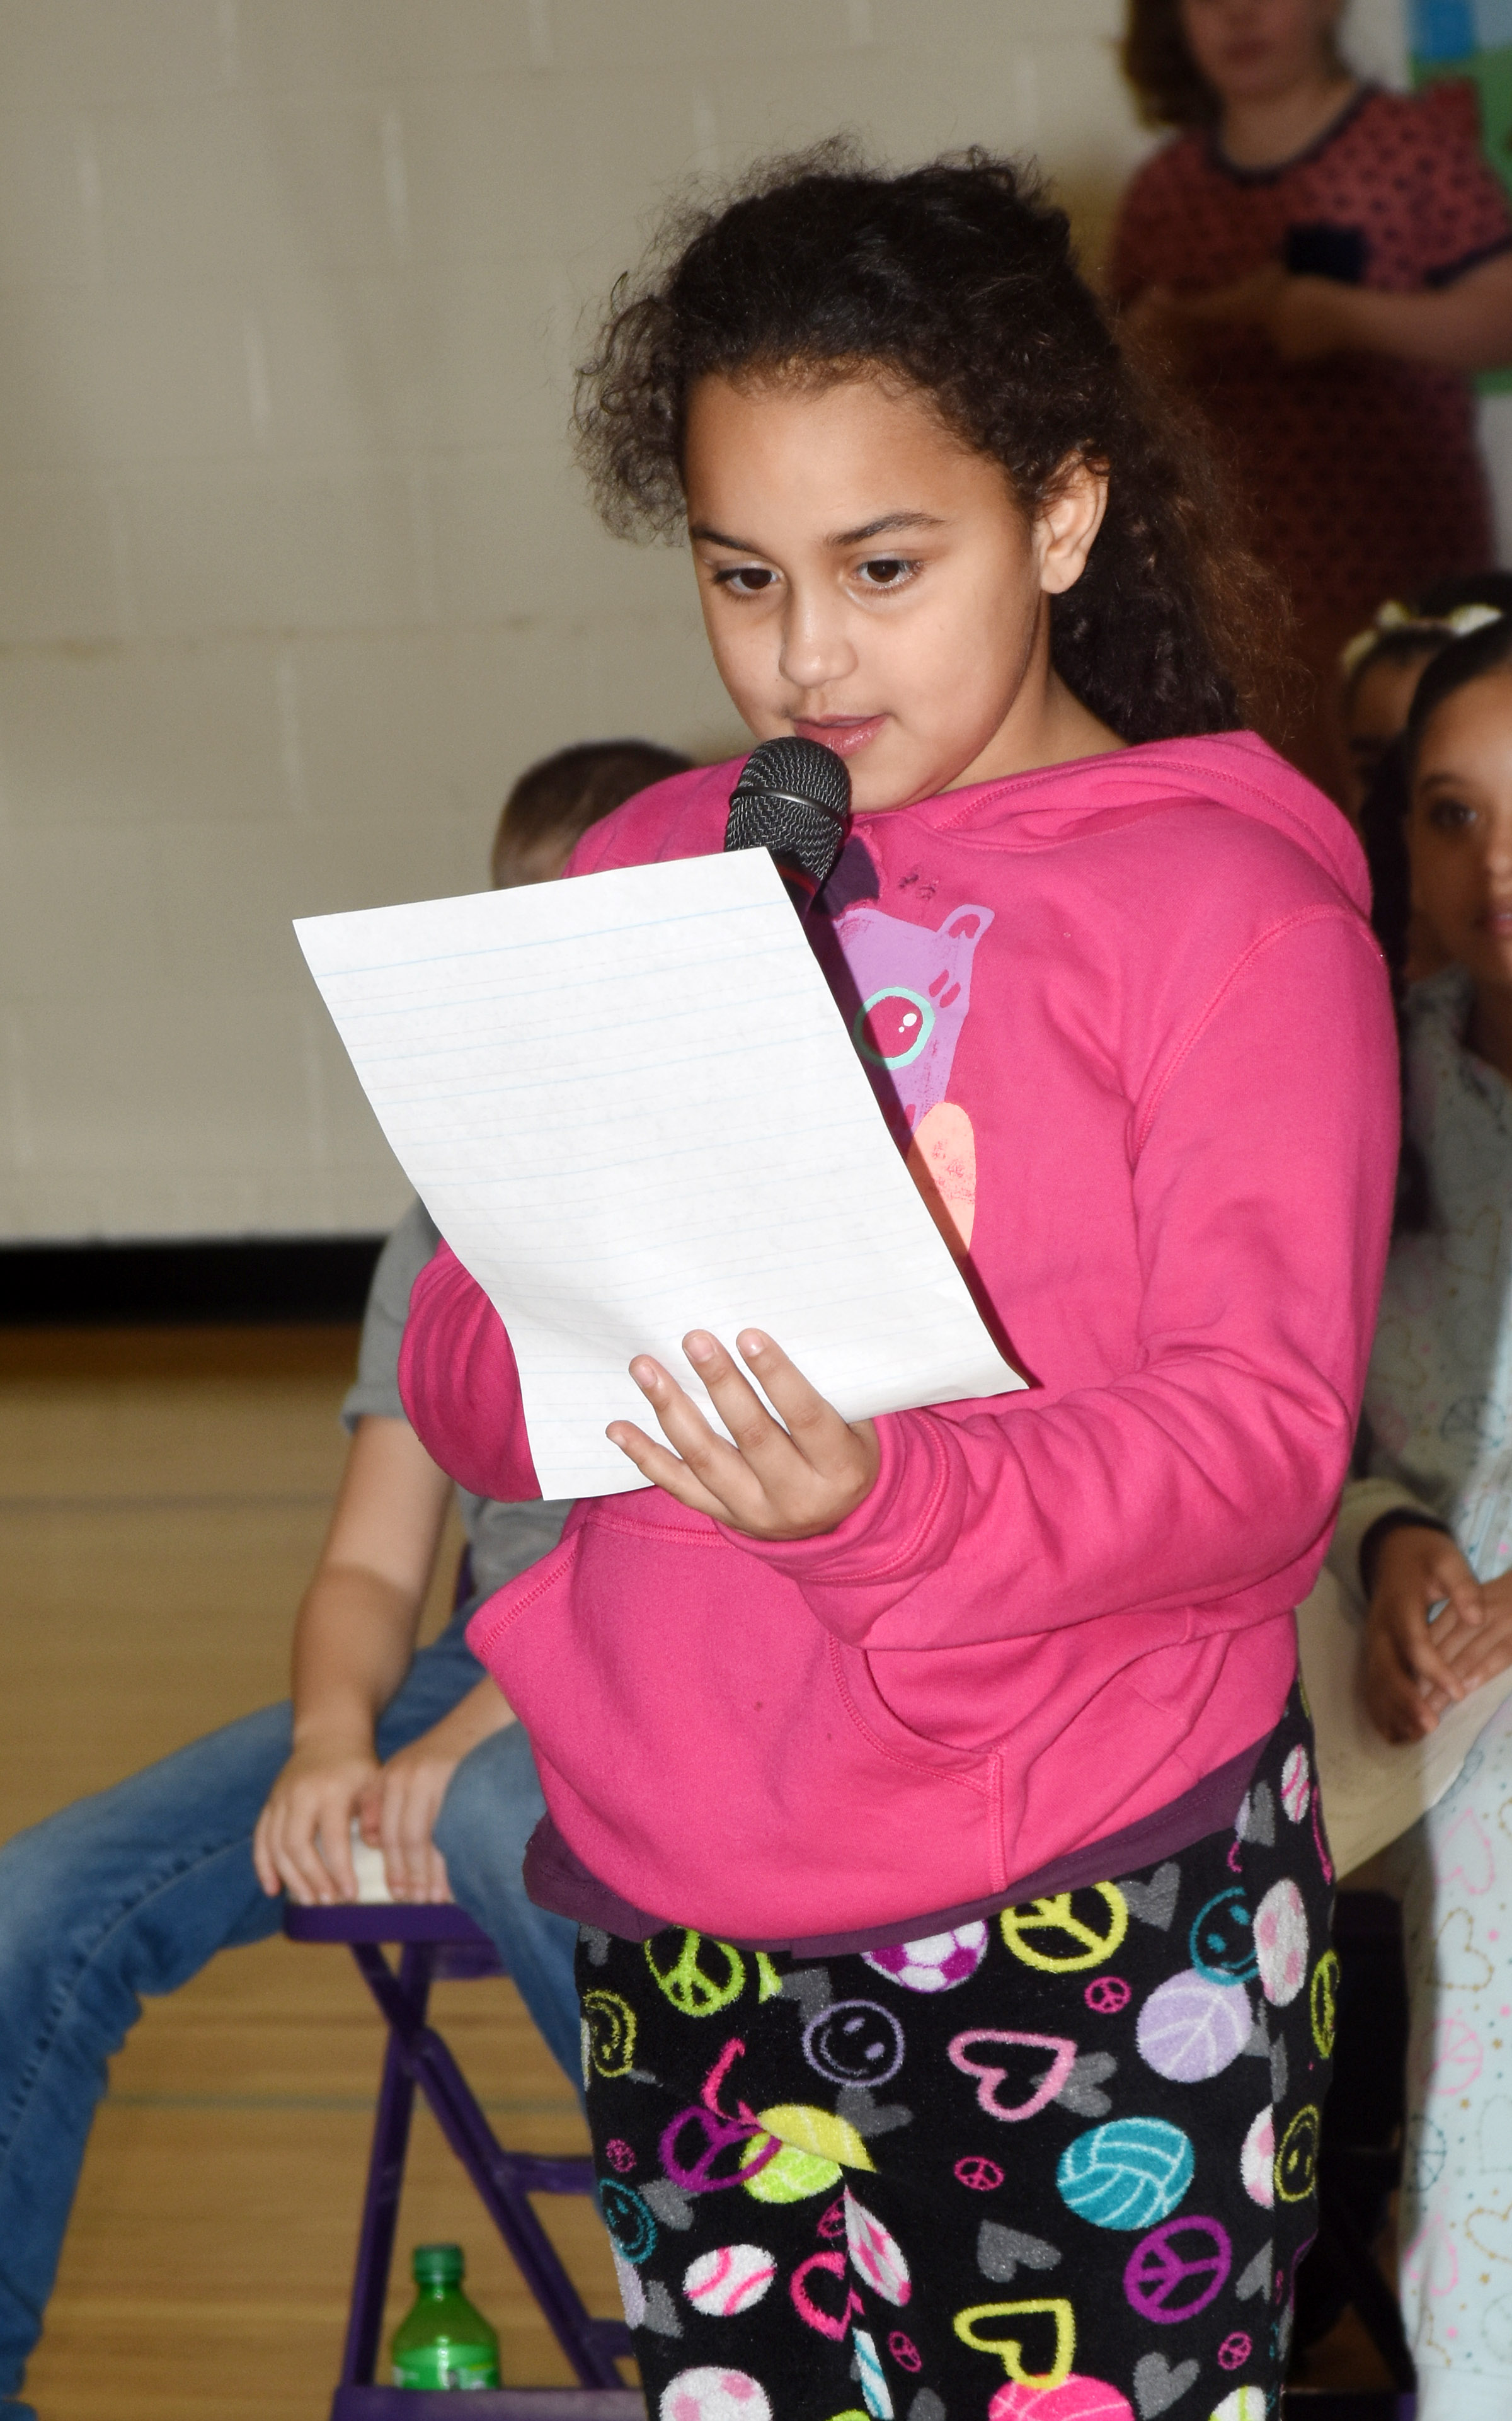 CES second-grader Maleigha Travis reads her letter thanking her teachers for all they do for her and her classmates.